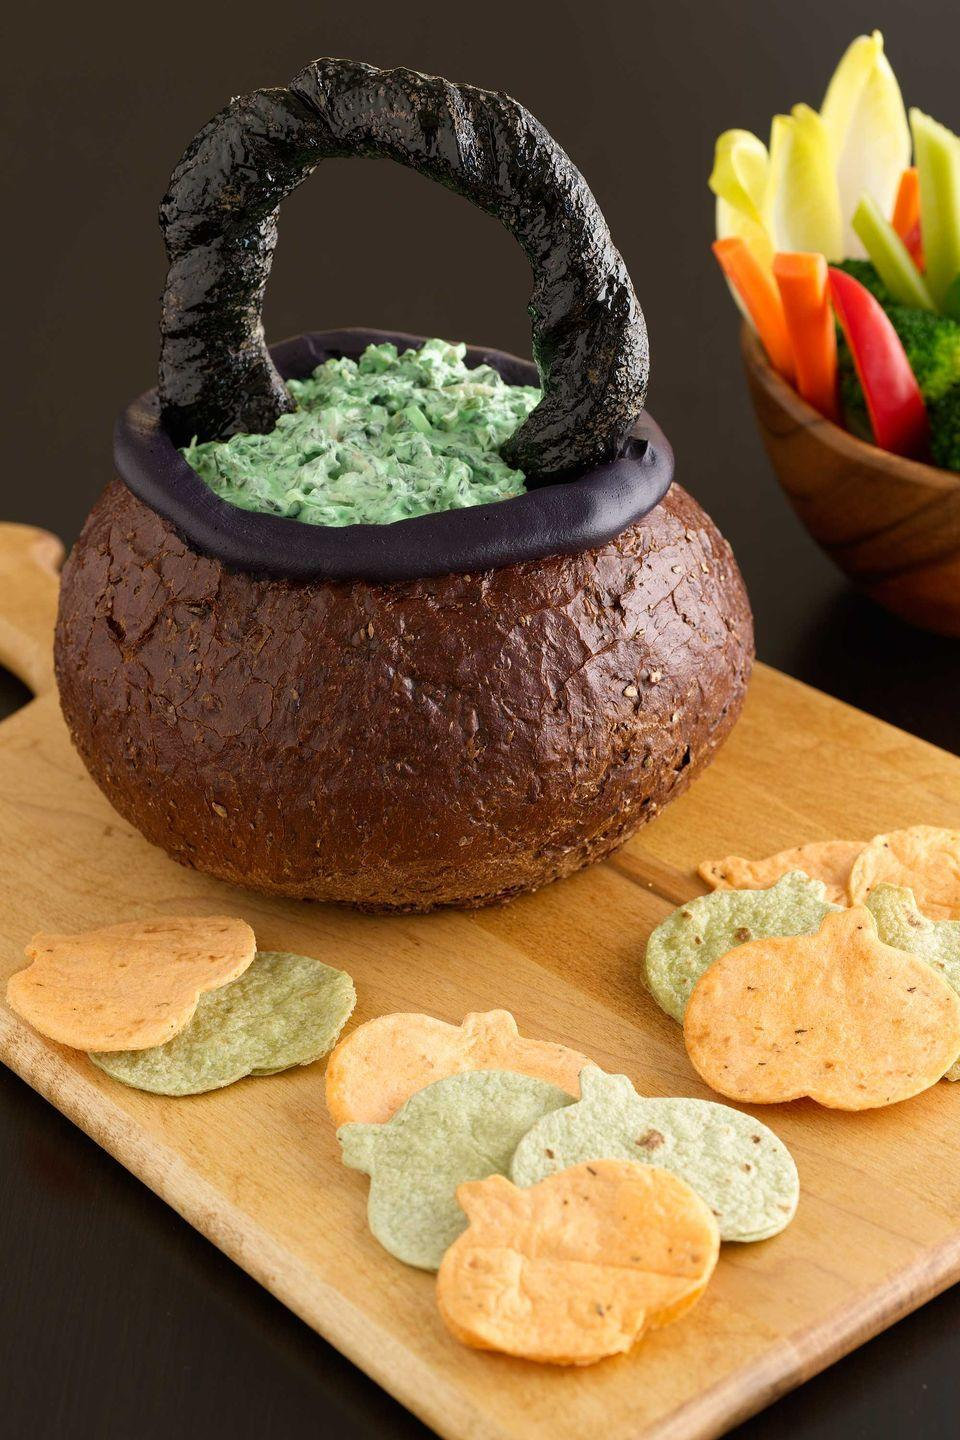 """<p>Impress guests with this crafty Halloween appetizer. It cleverly transforms pumpernickel bread, breadsticks, and cream cheese into a basket, before filling it with a super-simple creamy spinach dip.</p><p><a href=""""https://www.womansday.com/food-recipes/food-drinks/recipes/a10930/spooky-spinach-dip-in-bread-bowl-cauldron-recipe-122179/"""" rel=""""nofollow noopener"""" target=""""_blank"""" data-ylk=""""slk:Get the Spinach Dip in a Bread Bowl Cauldron recipe."""" class=""""link rapid-noclick-resp""""><em>Get the Spinach Dip in a Bread Bowl Cauldron recipe.</em></a> </p>"""